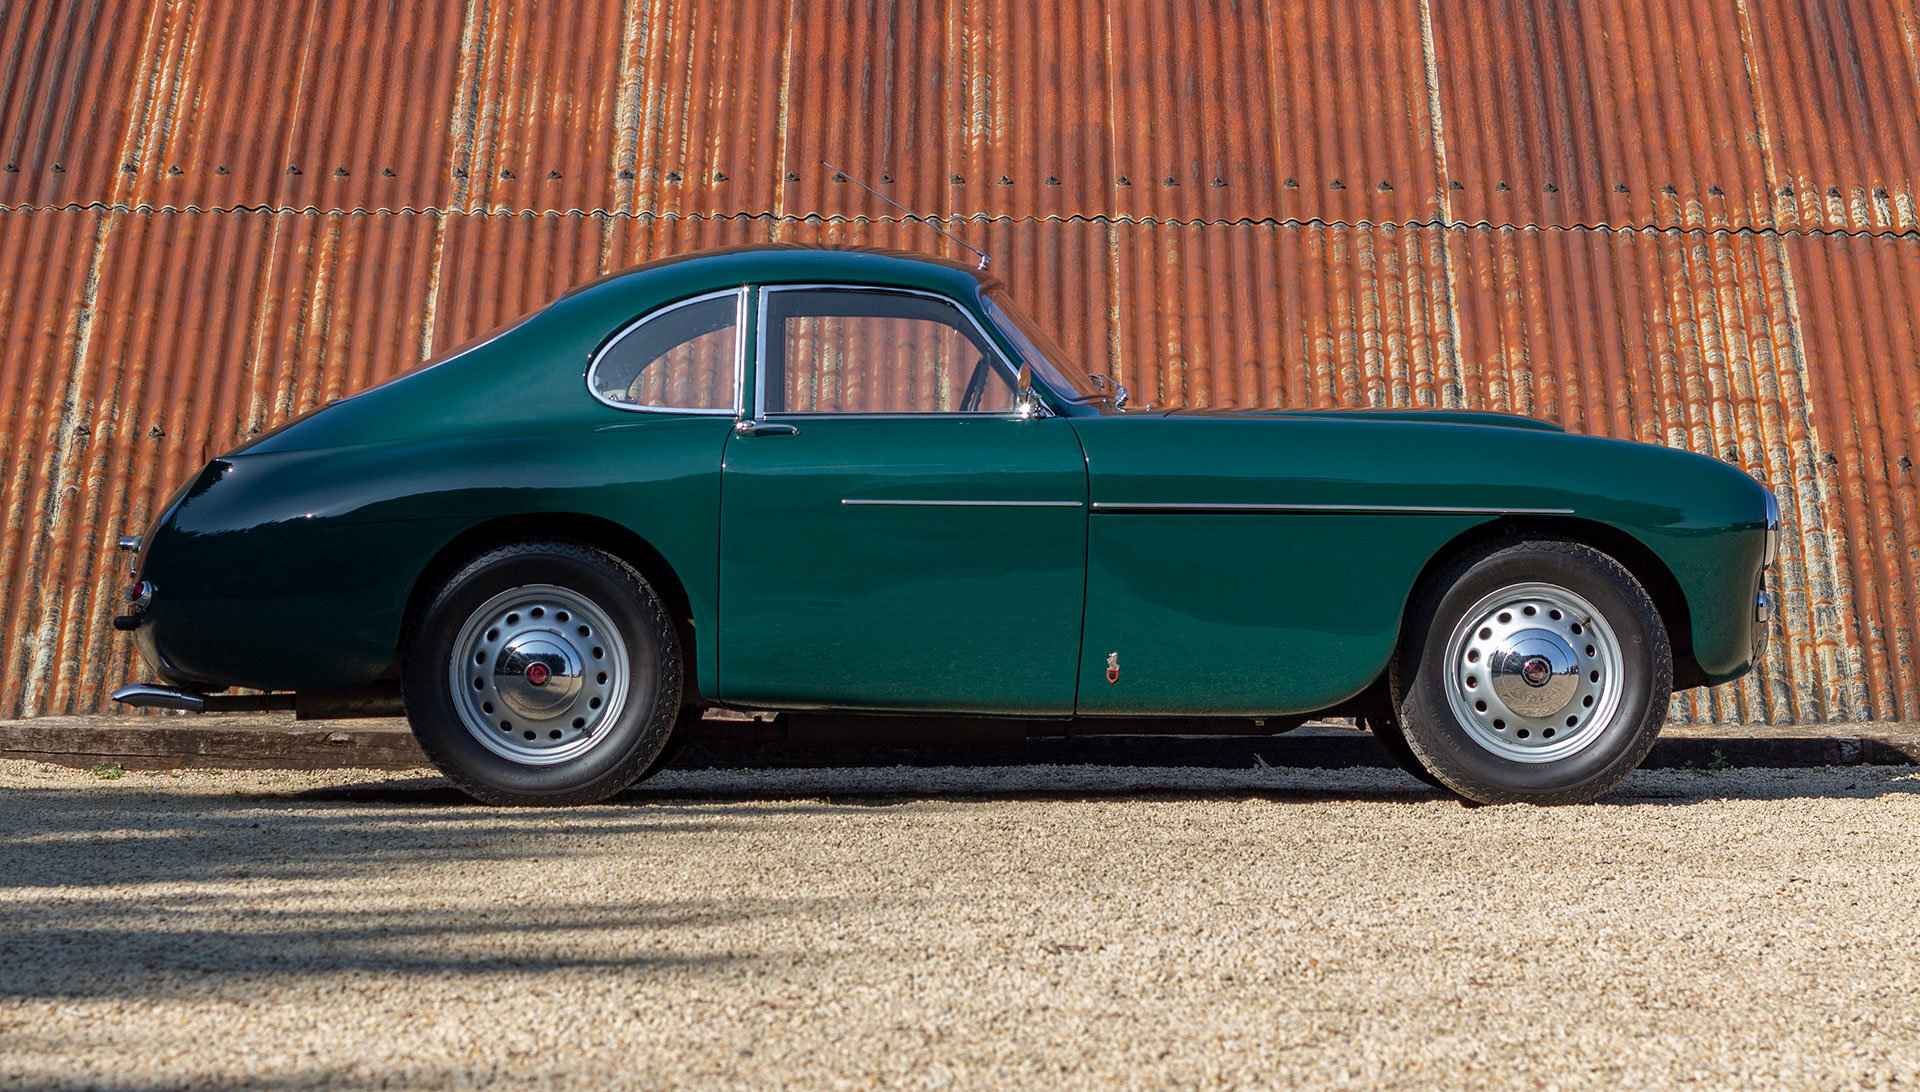 1955 Bristol 404 Coupé - £40k mechanical rebuild in 2019 For Sale (picture 6 of 19)